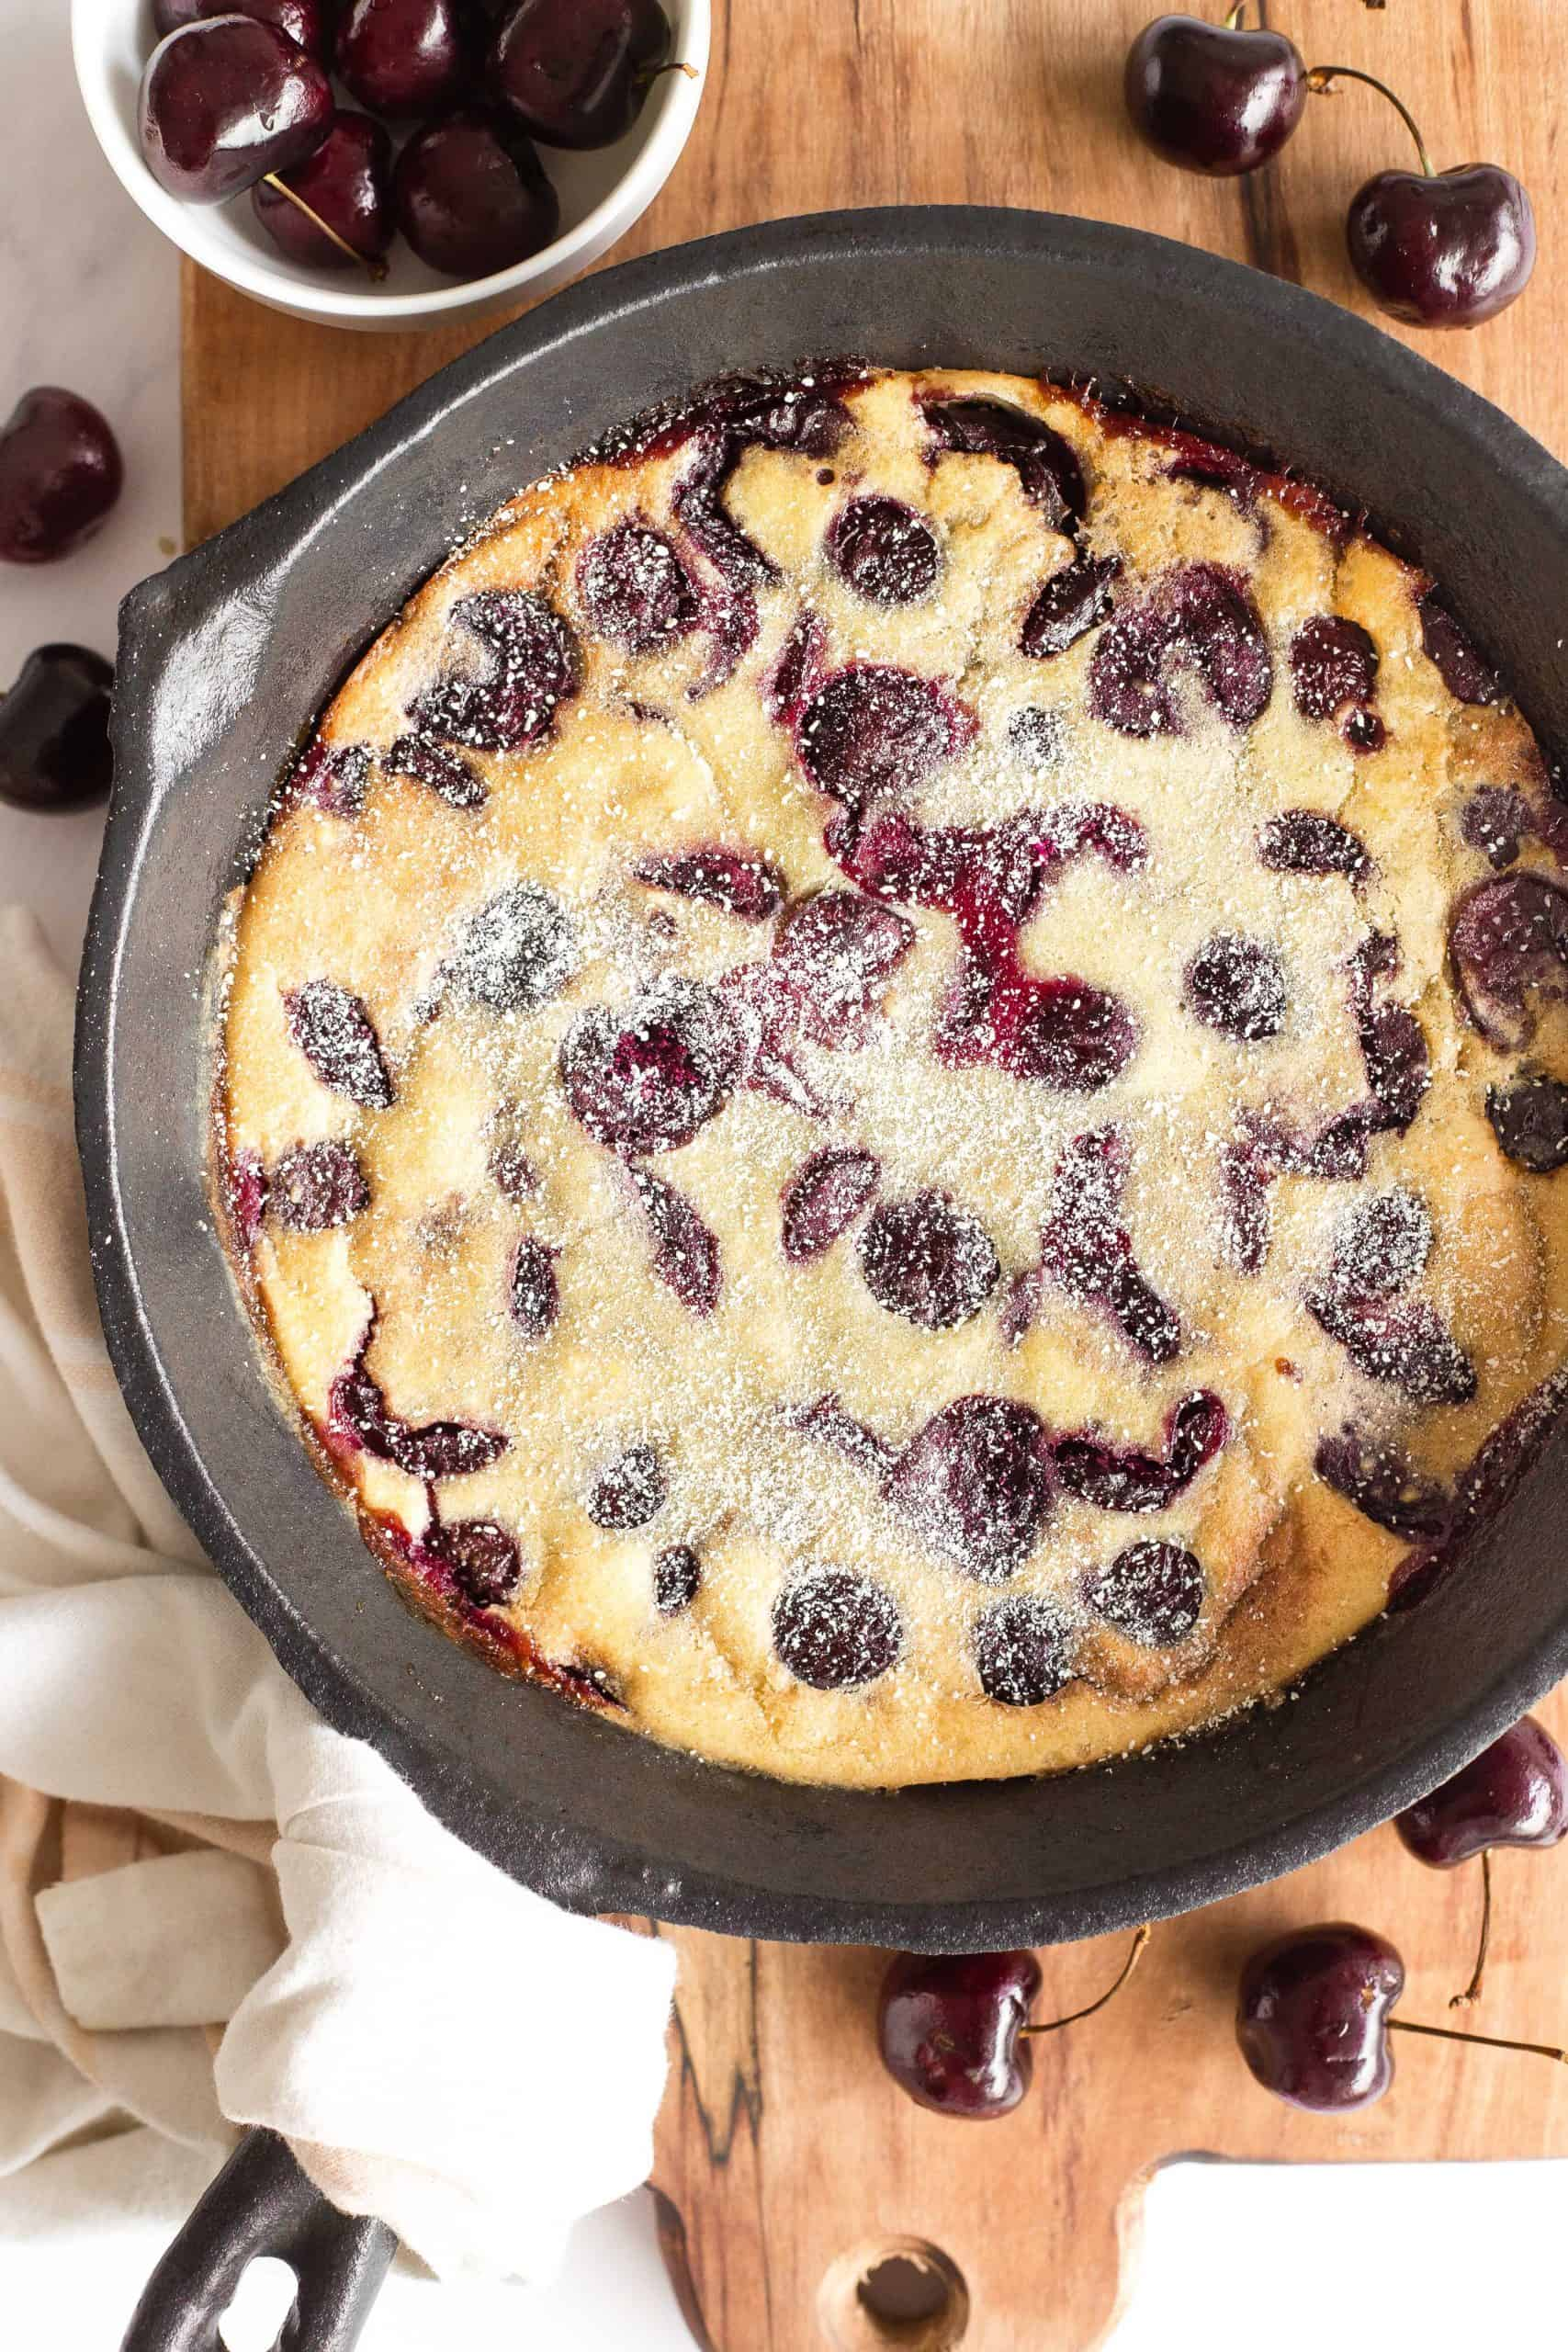 A cast iron skillet with clafoutis on a wooden board.